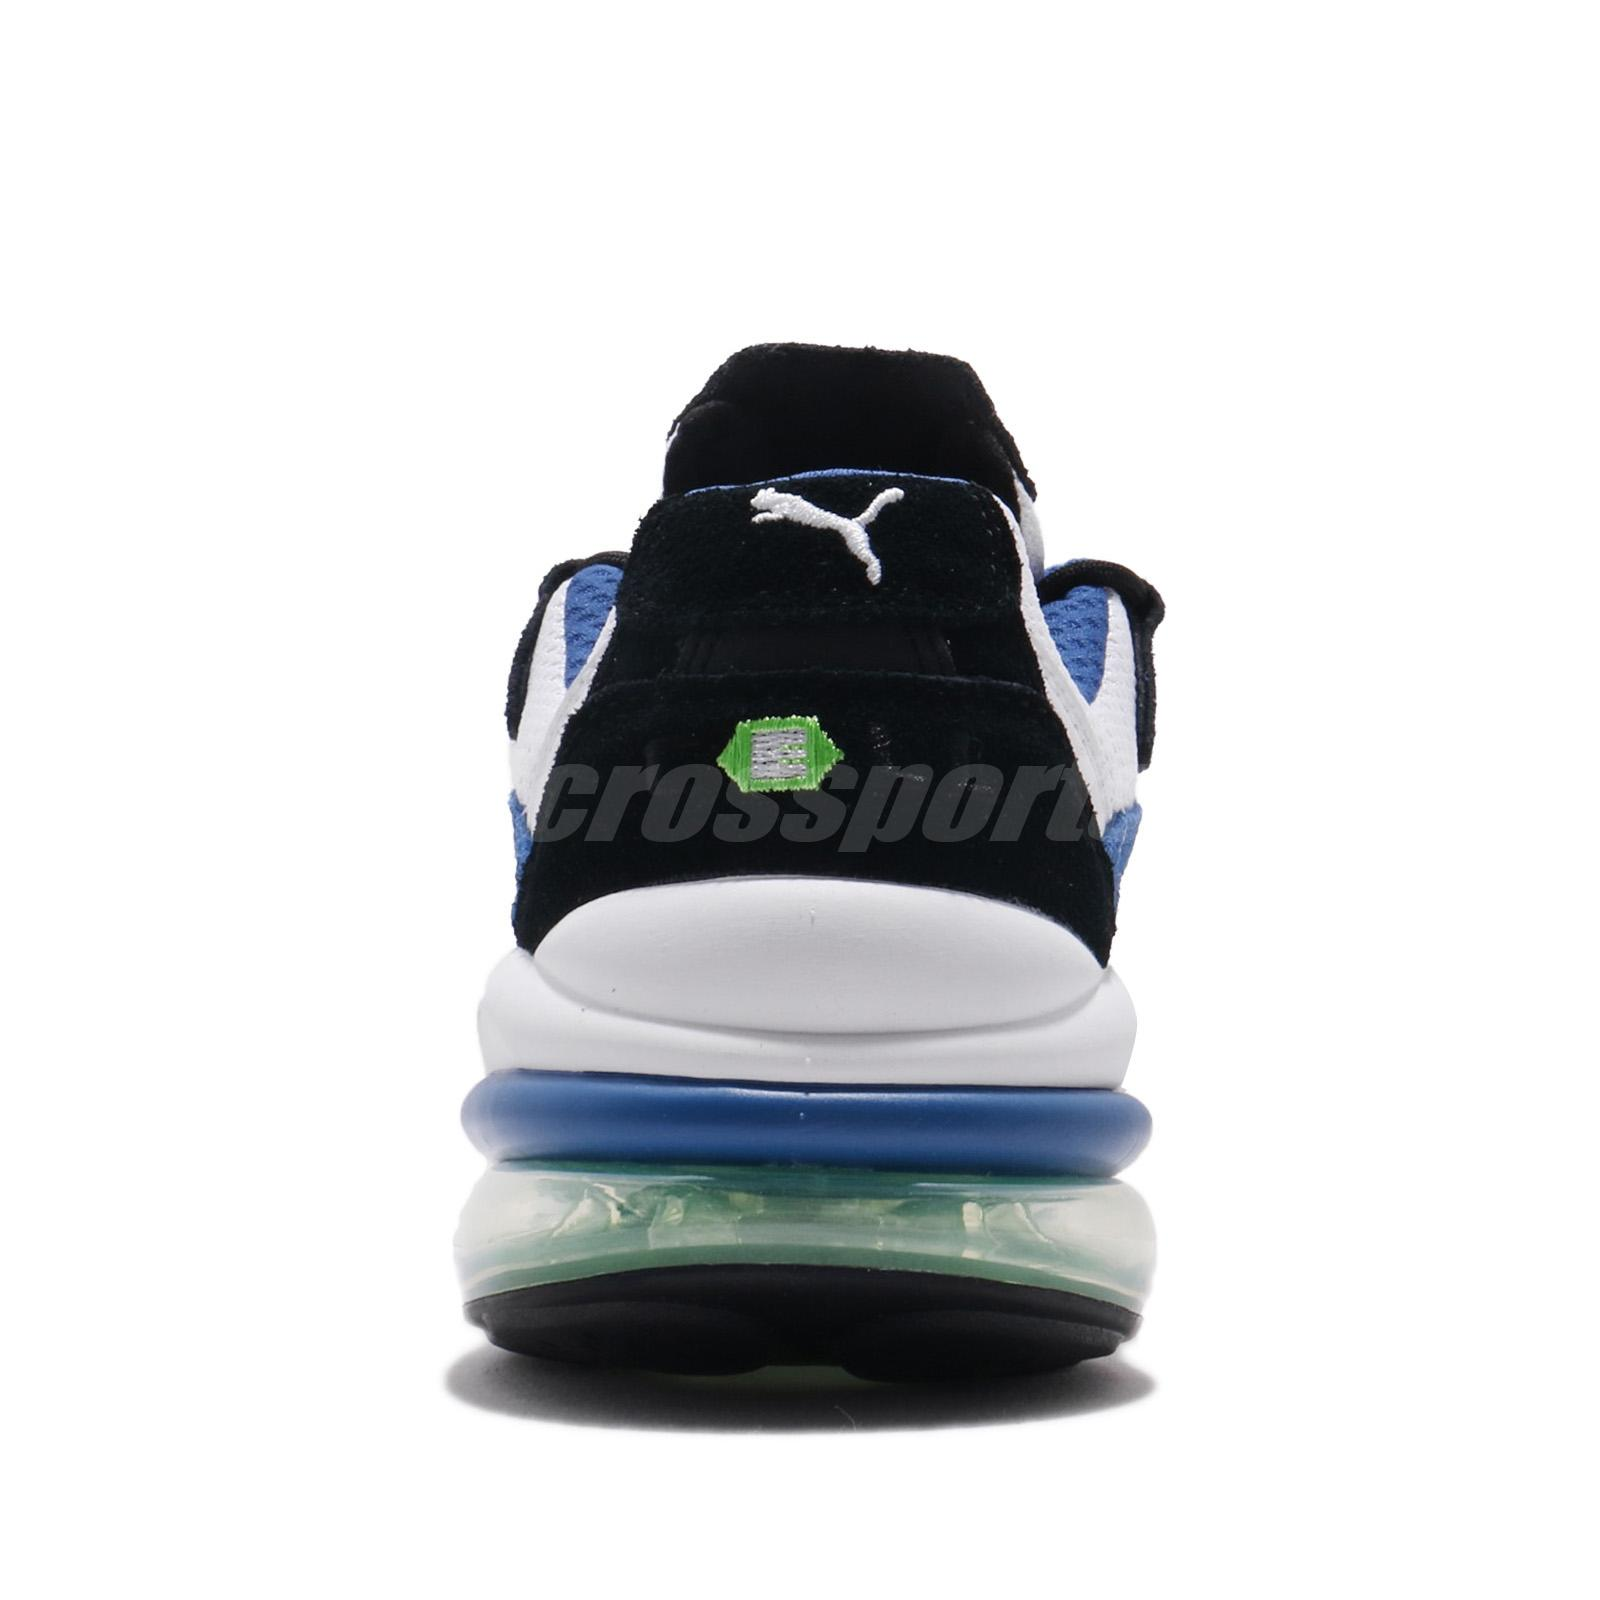 abed84e914f Puma Cell Venom White Surf The Web Black Men Women Running Shoes ...